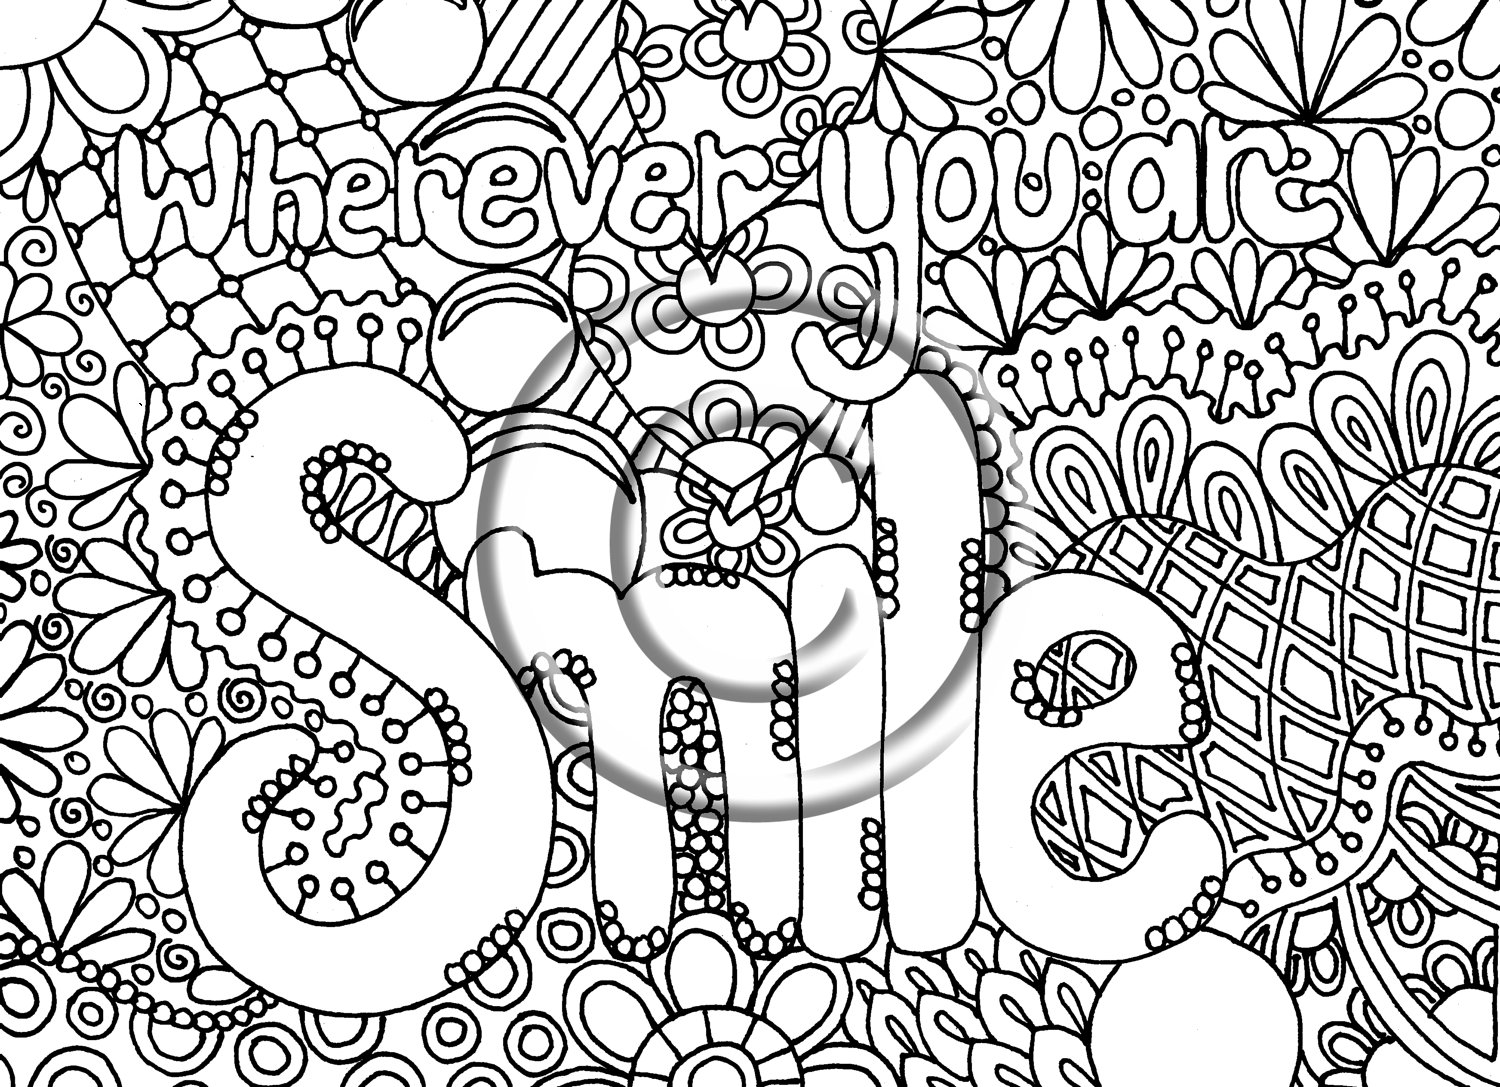 Abstract Coloring Pages To Download And Print For Free